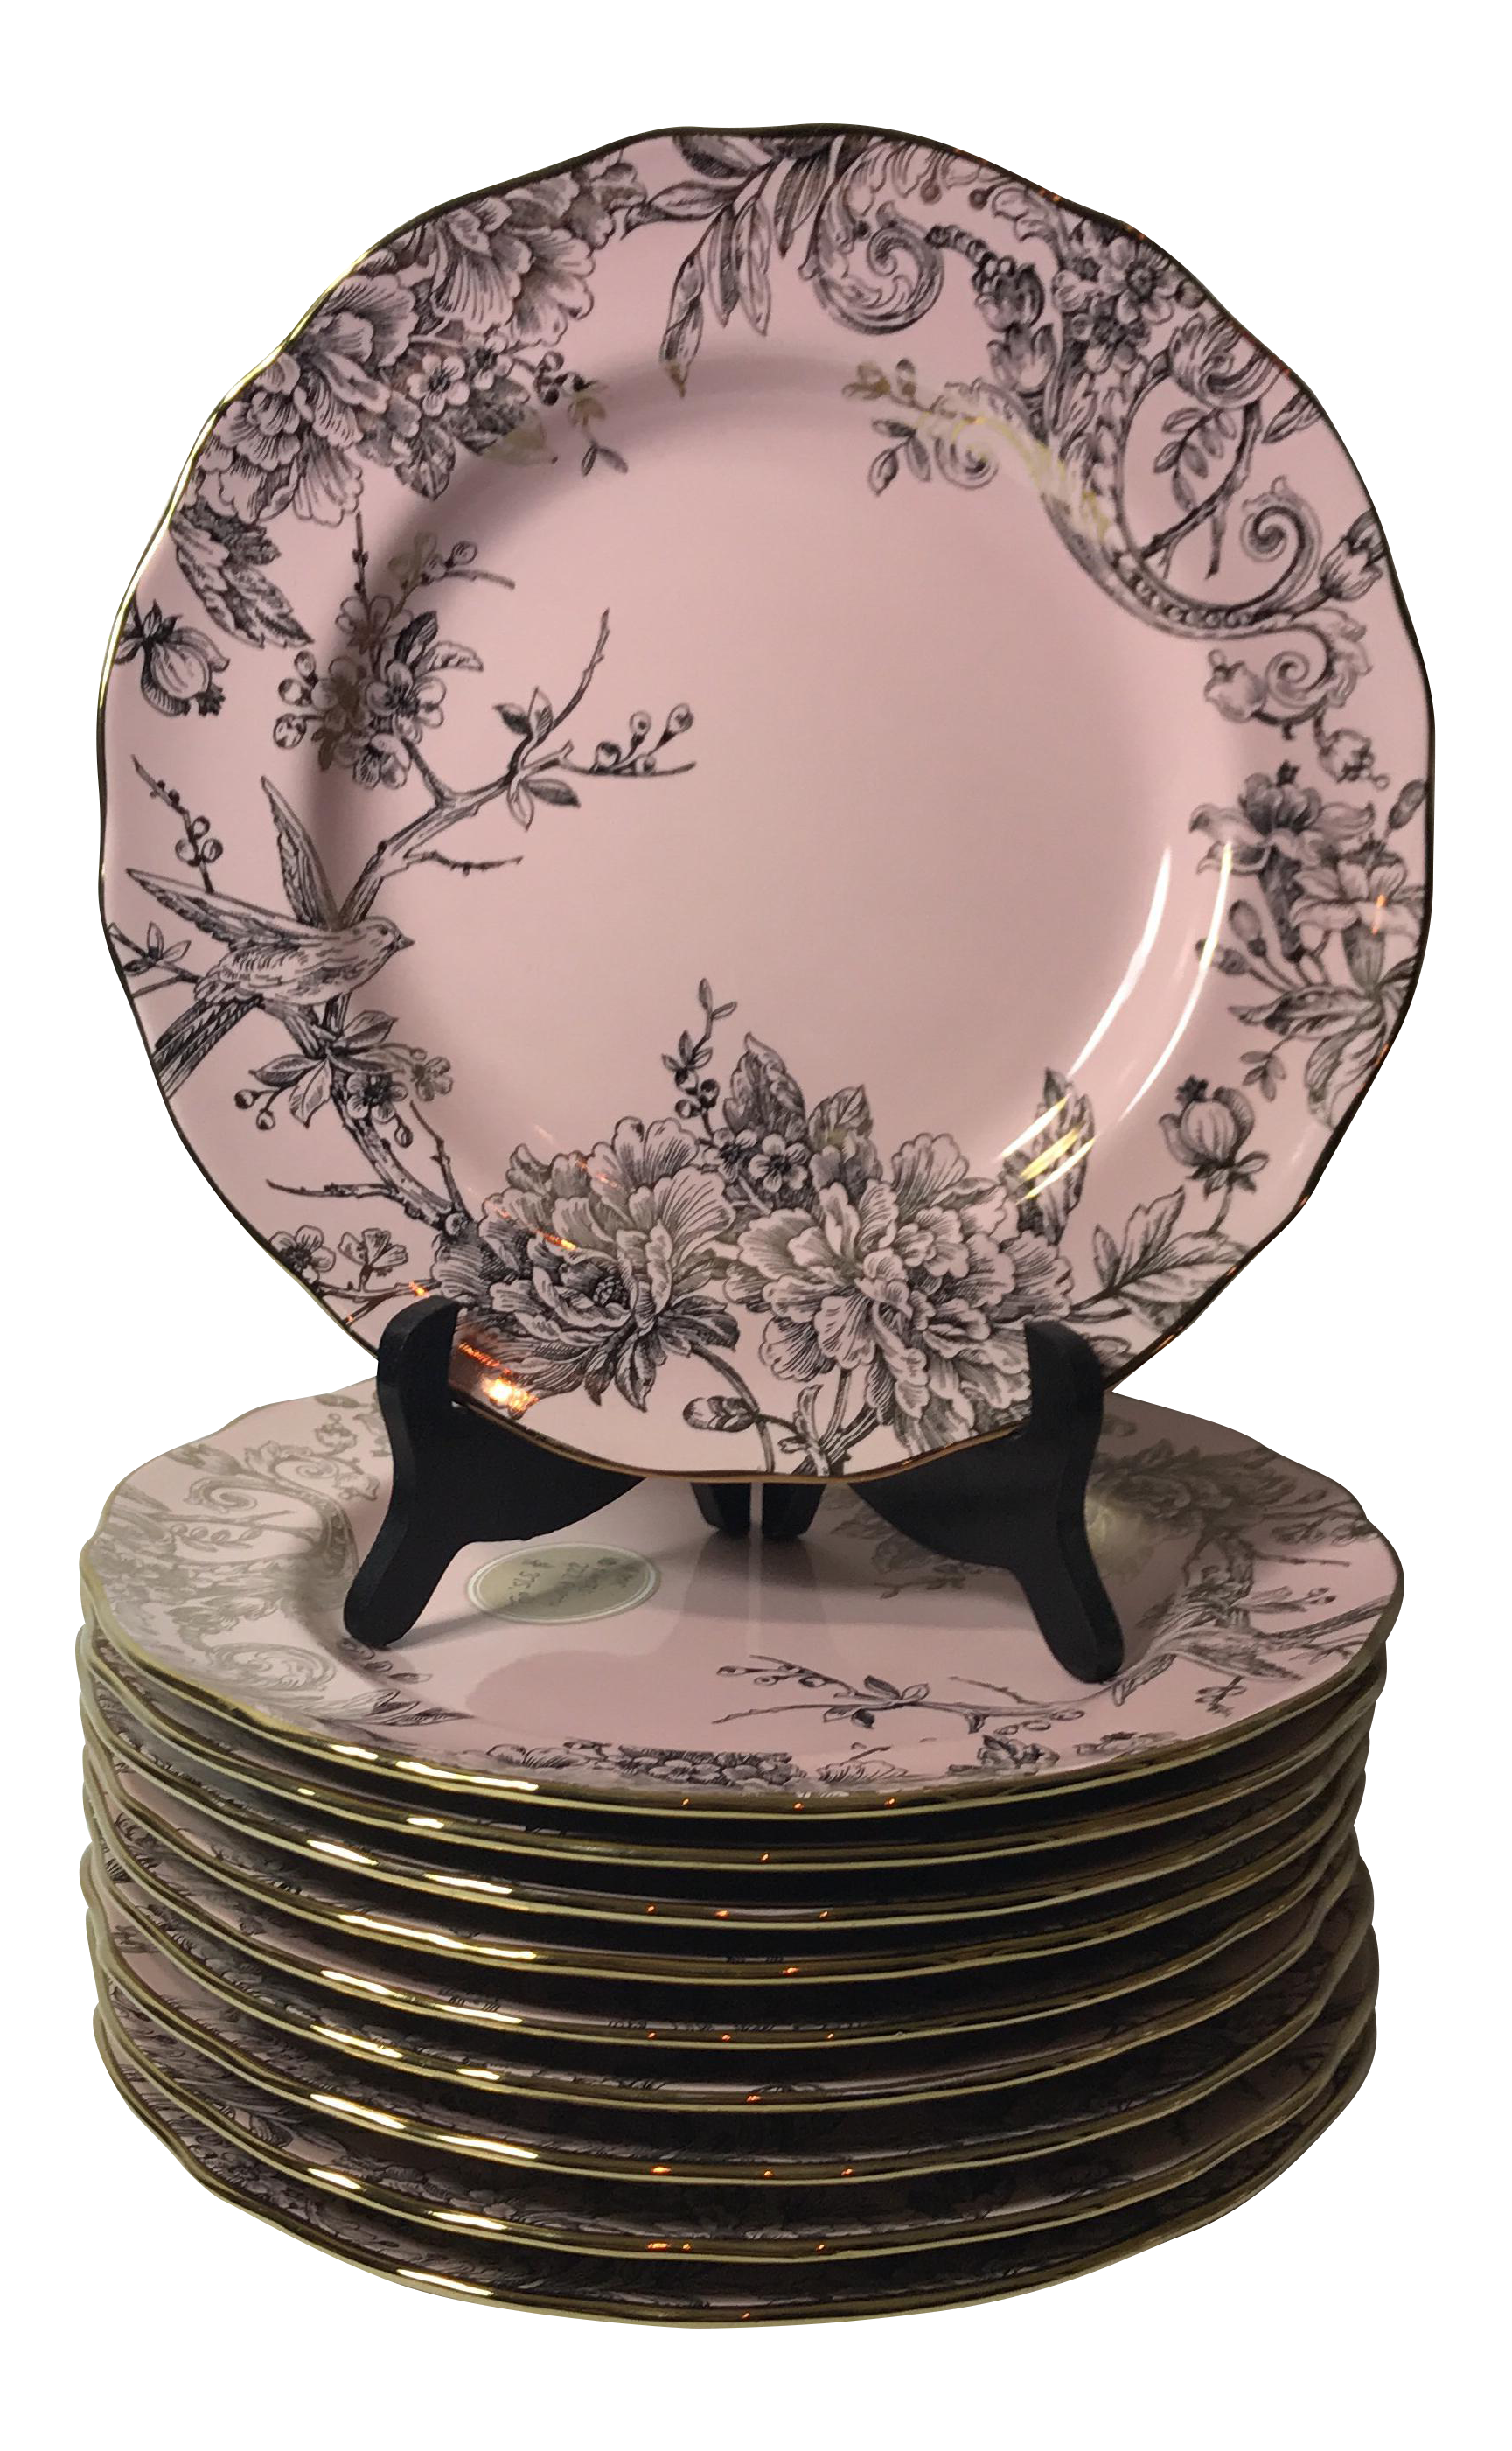 pink-and-gold-dinner-plates-set-of-10-0091.png